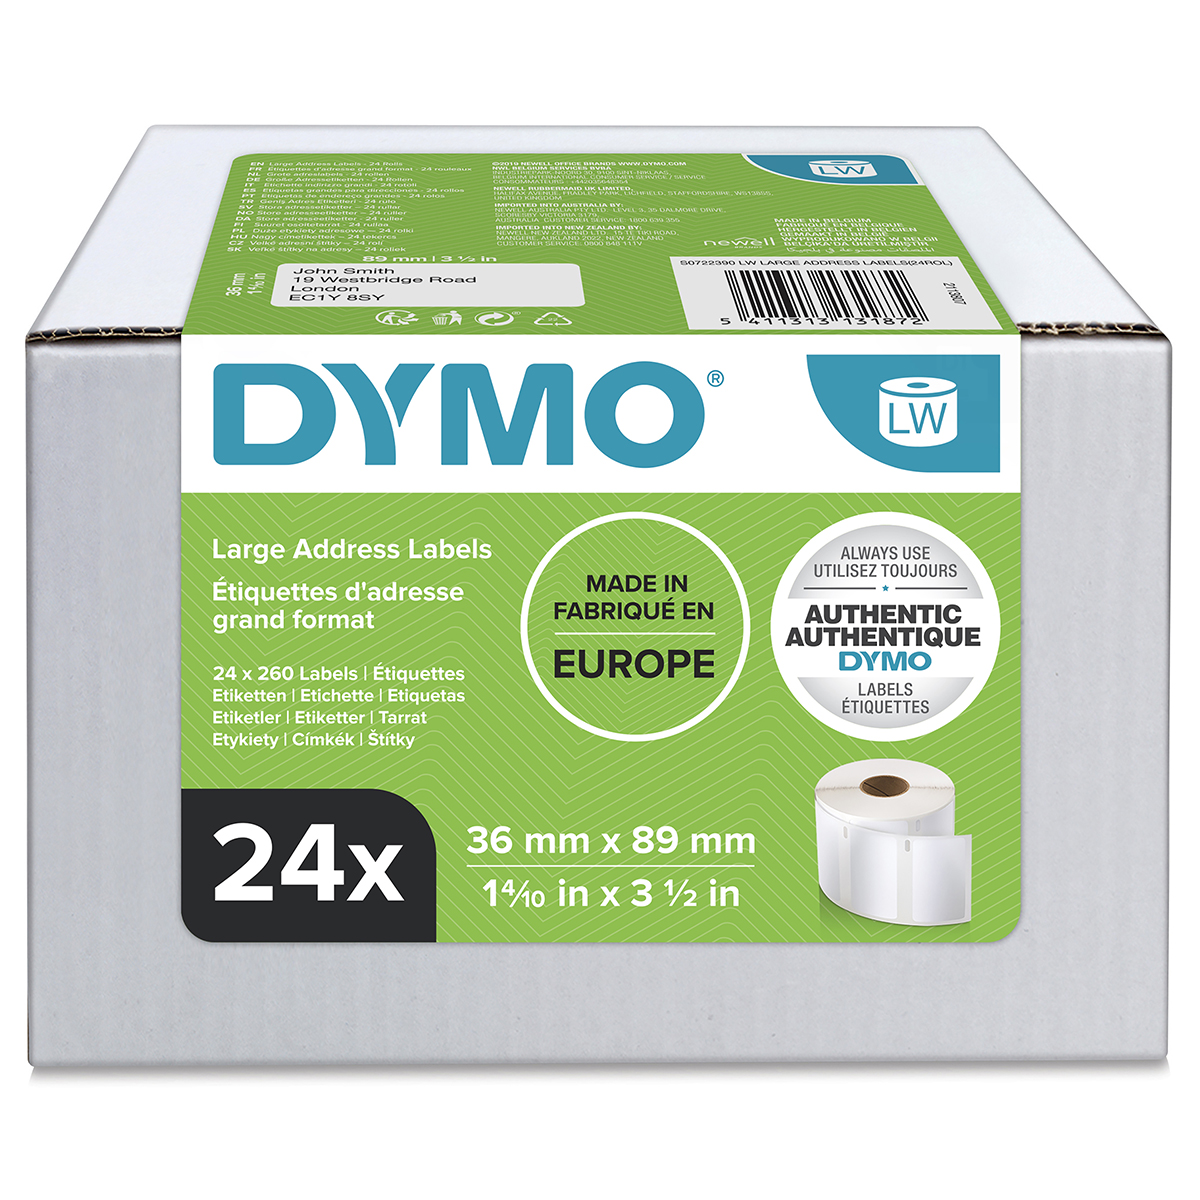 Dymo 99012 24 Rolls of 36mm x 89mm Large Address Permanent Labels